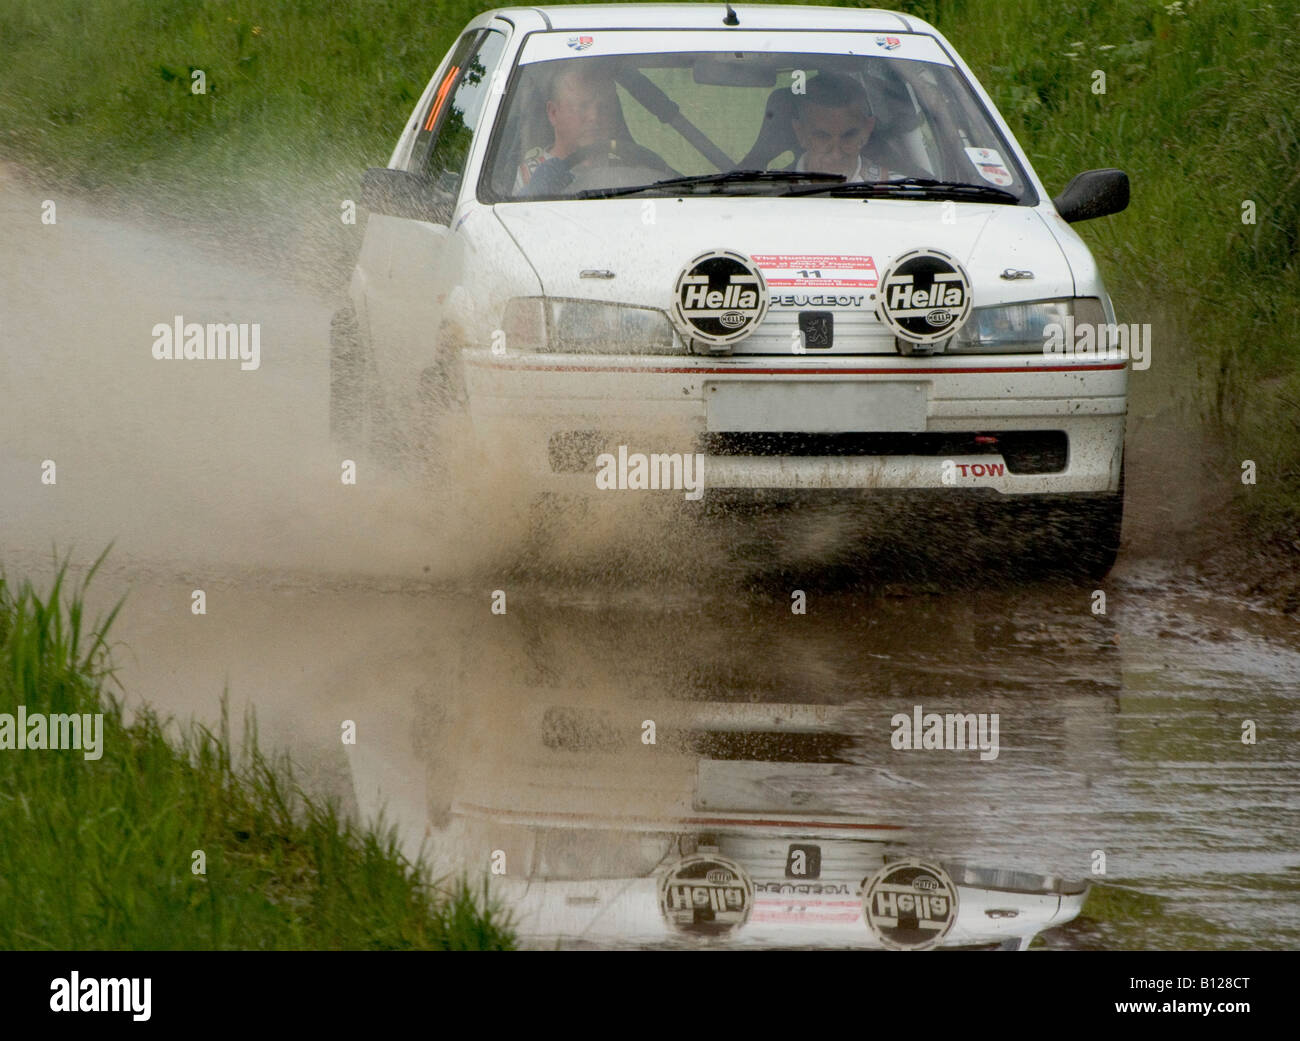 Rally Car Mud Spray Stock Photos & Rally Car Mud Spray Stock Images ...